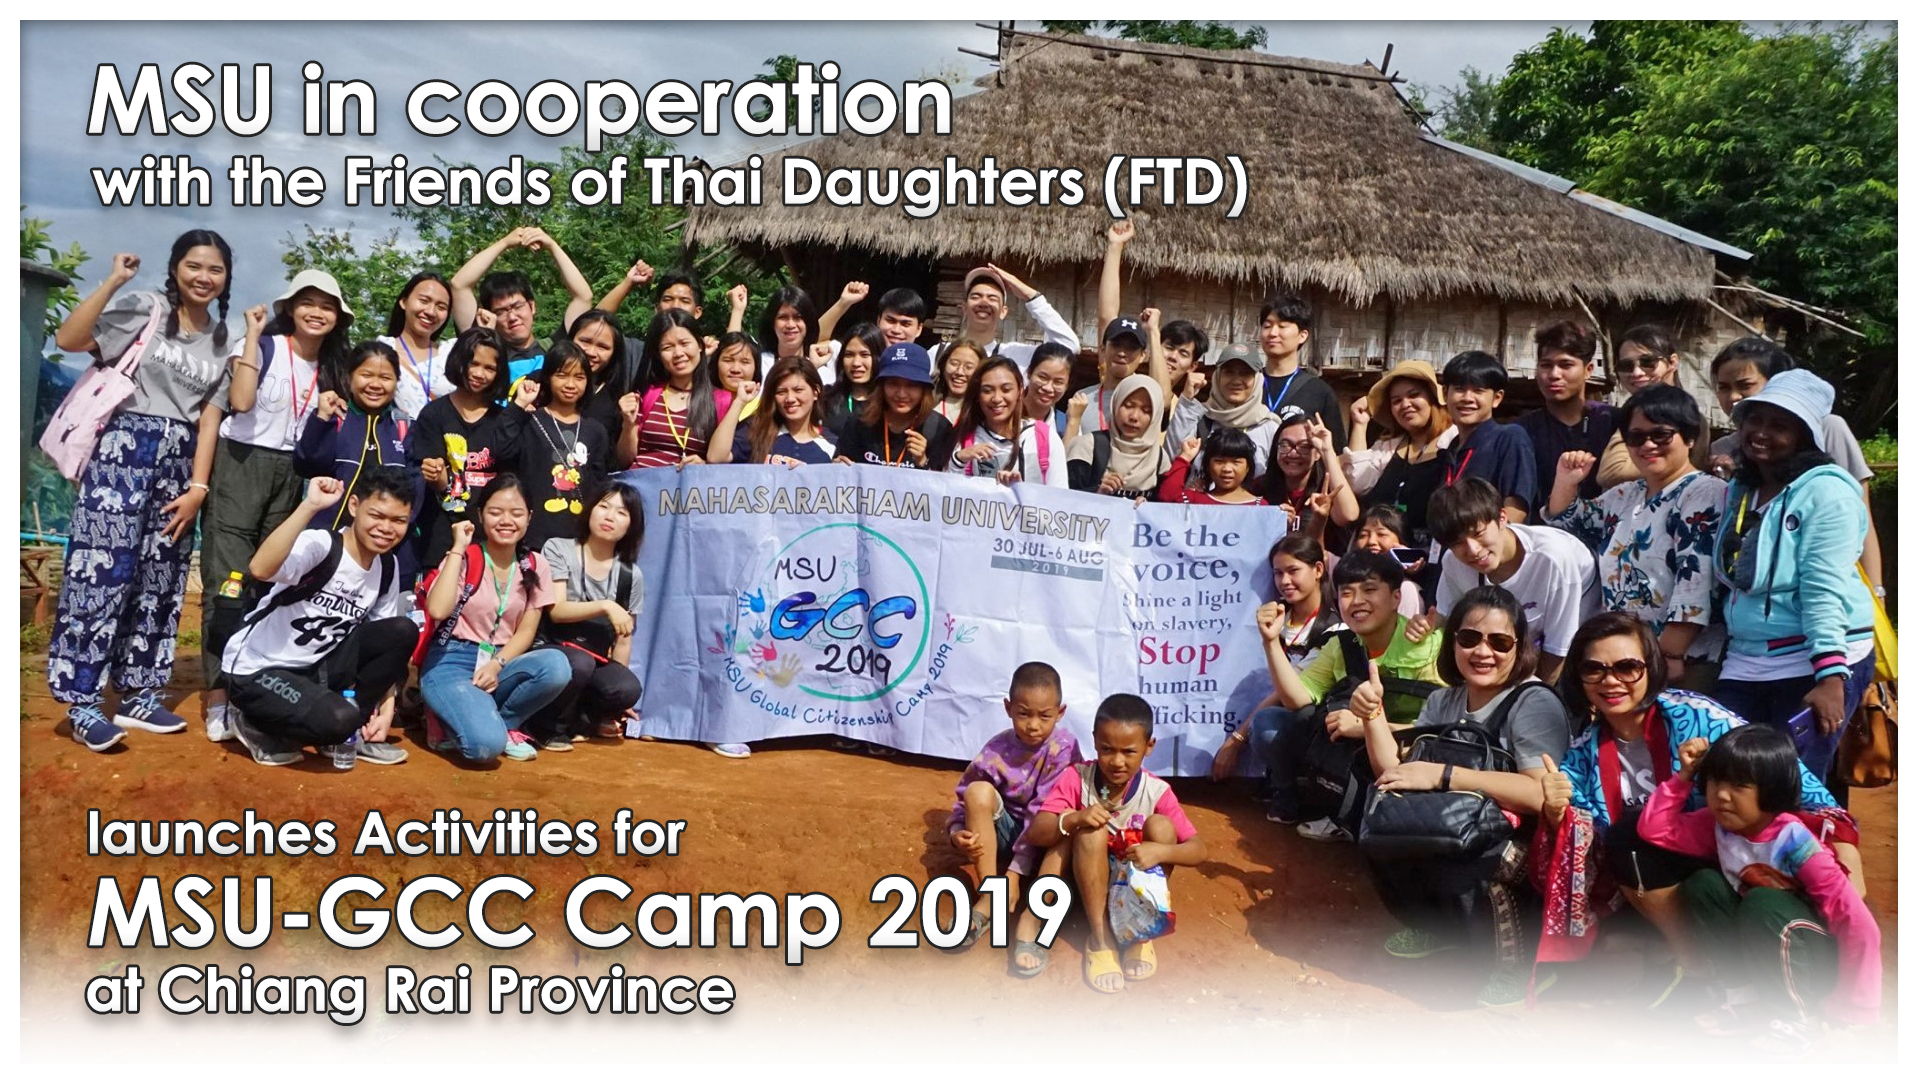 Mahasarakham University in cooperation with the Friends of Thai Daughters (FTD) launches Activities for MSU-GCC Camp 2019 at Chiang Rai Province